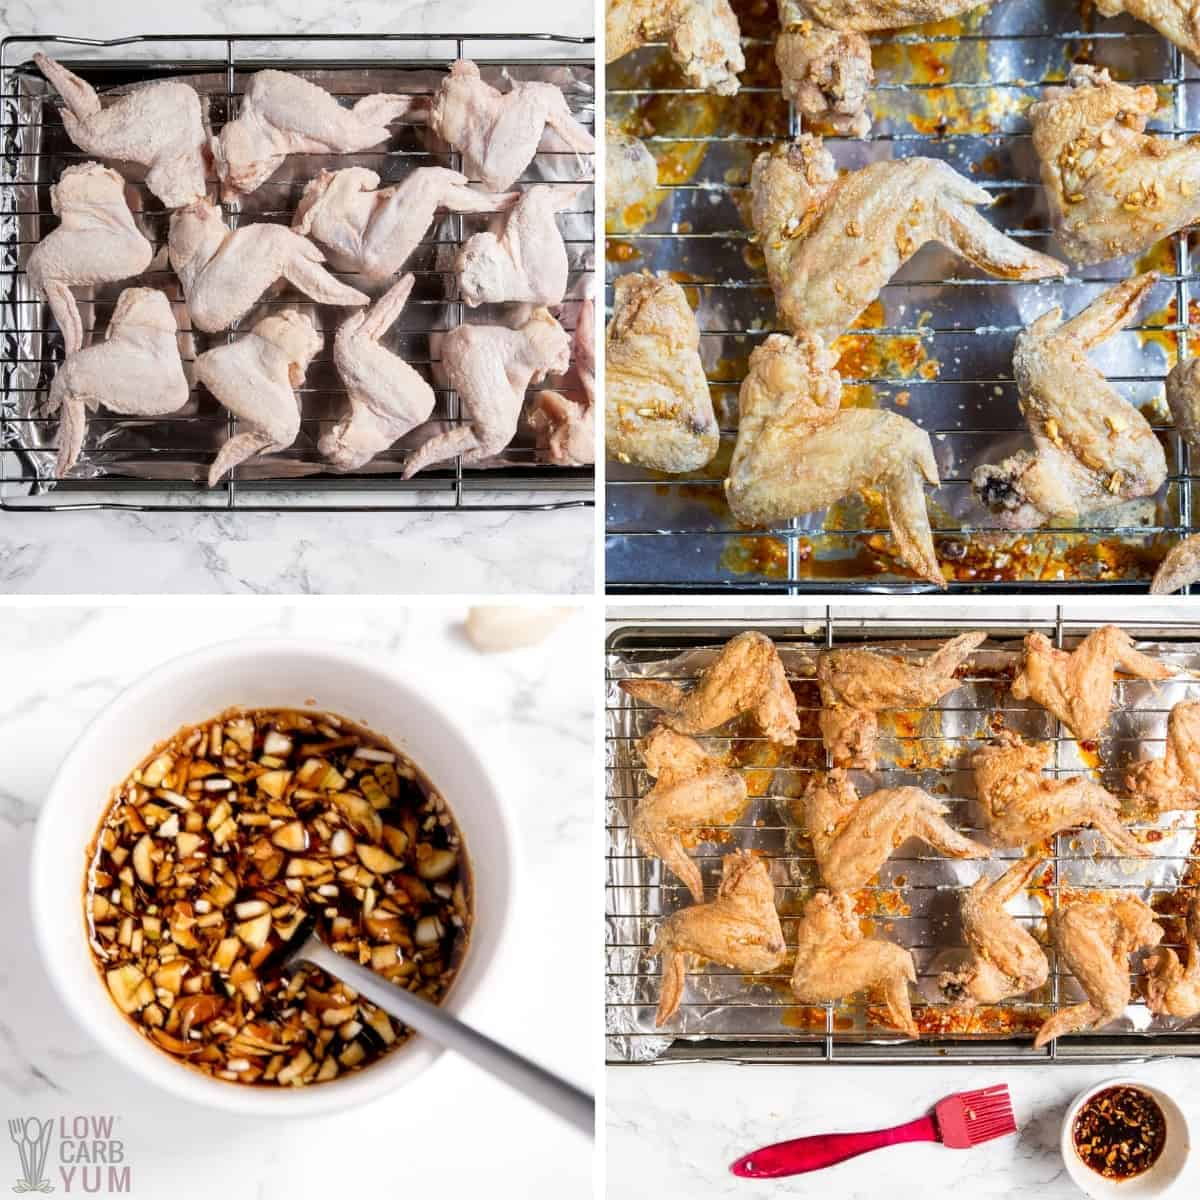 recipe steps for baking and basting wings